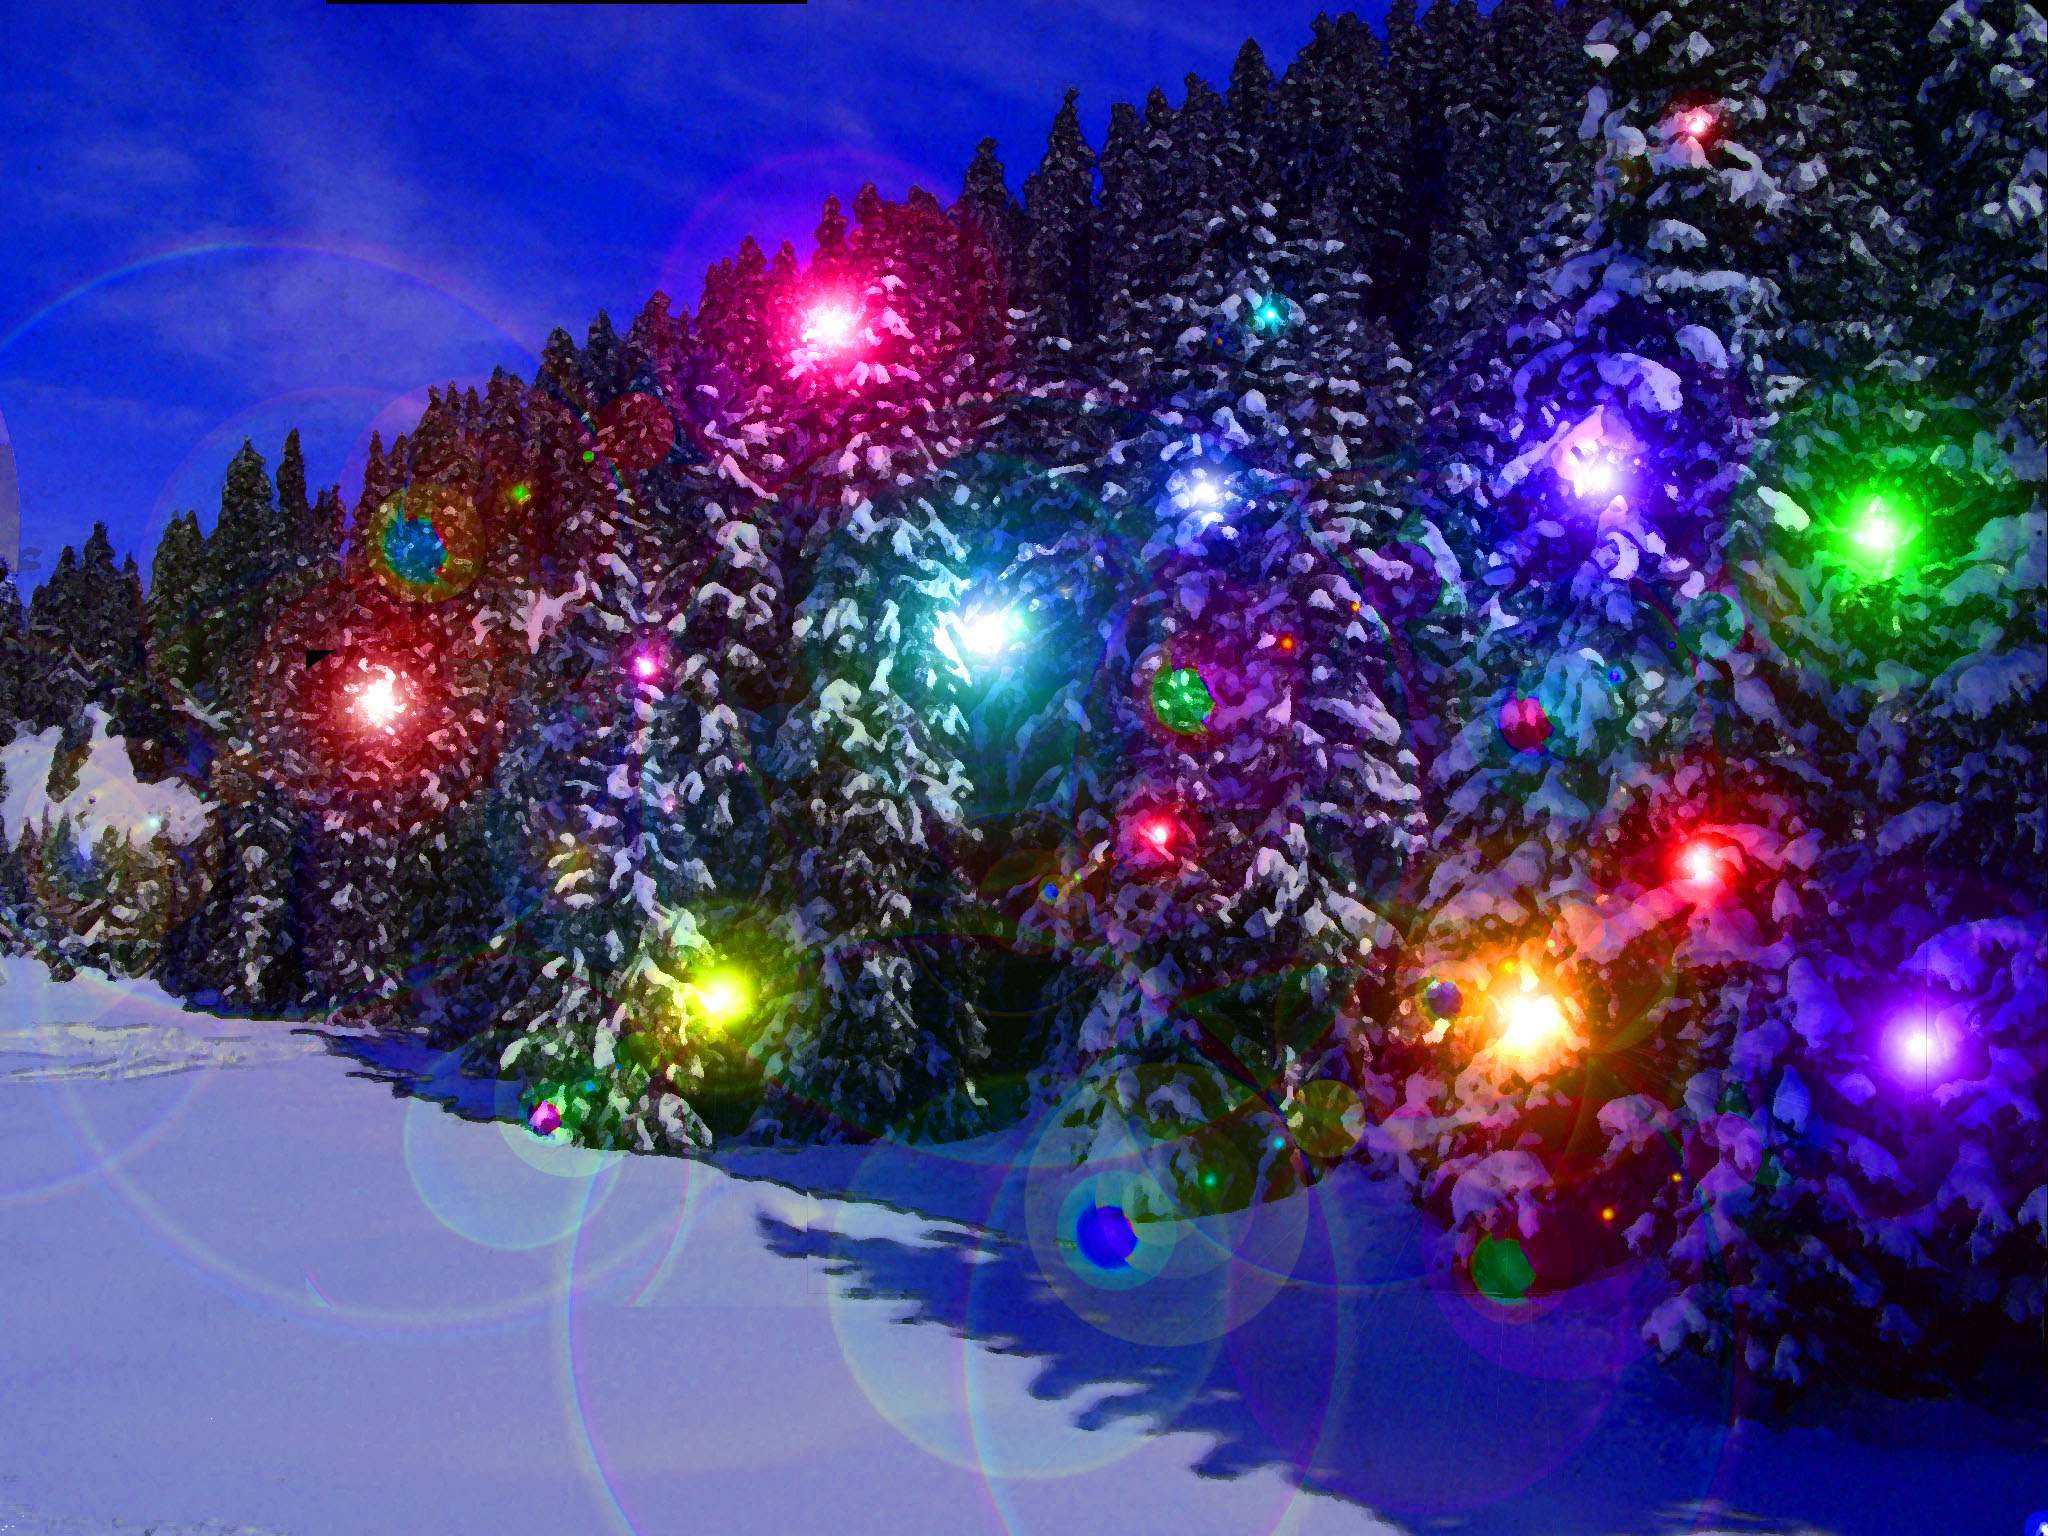 Animated Holiday Lights Wallpaper 1